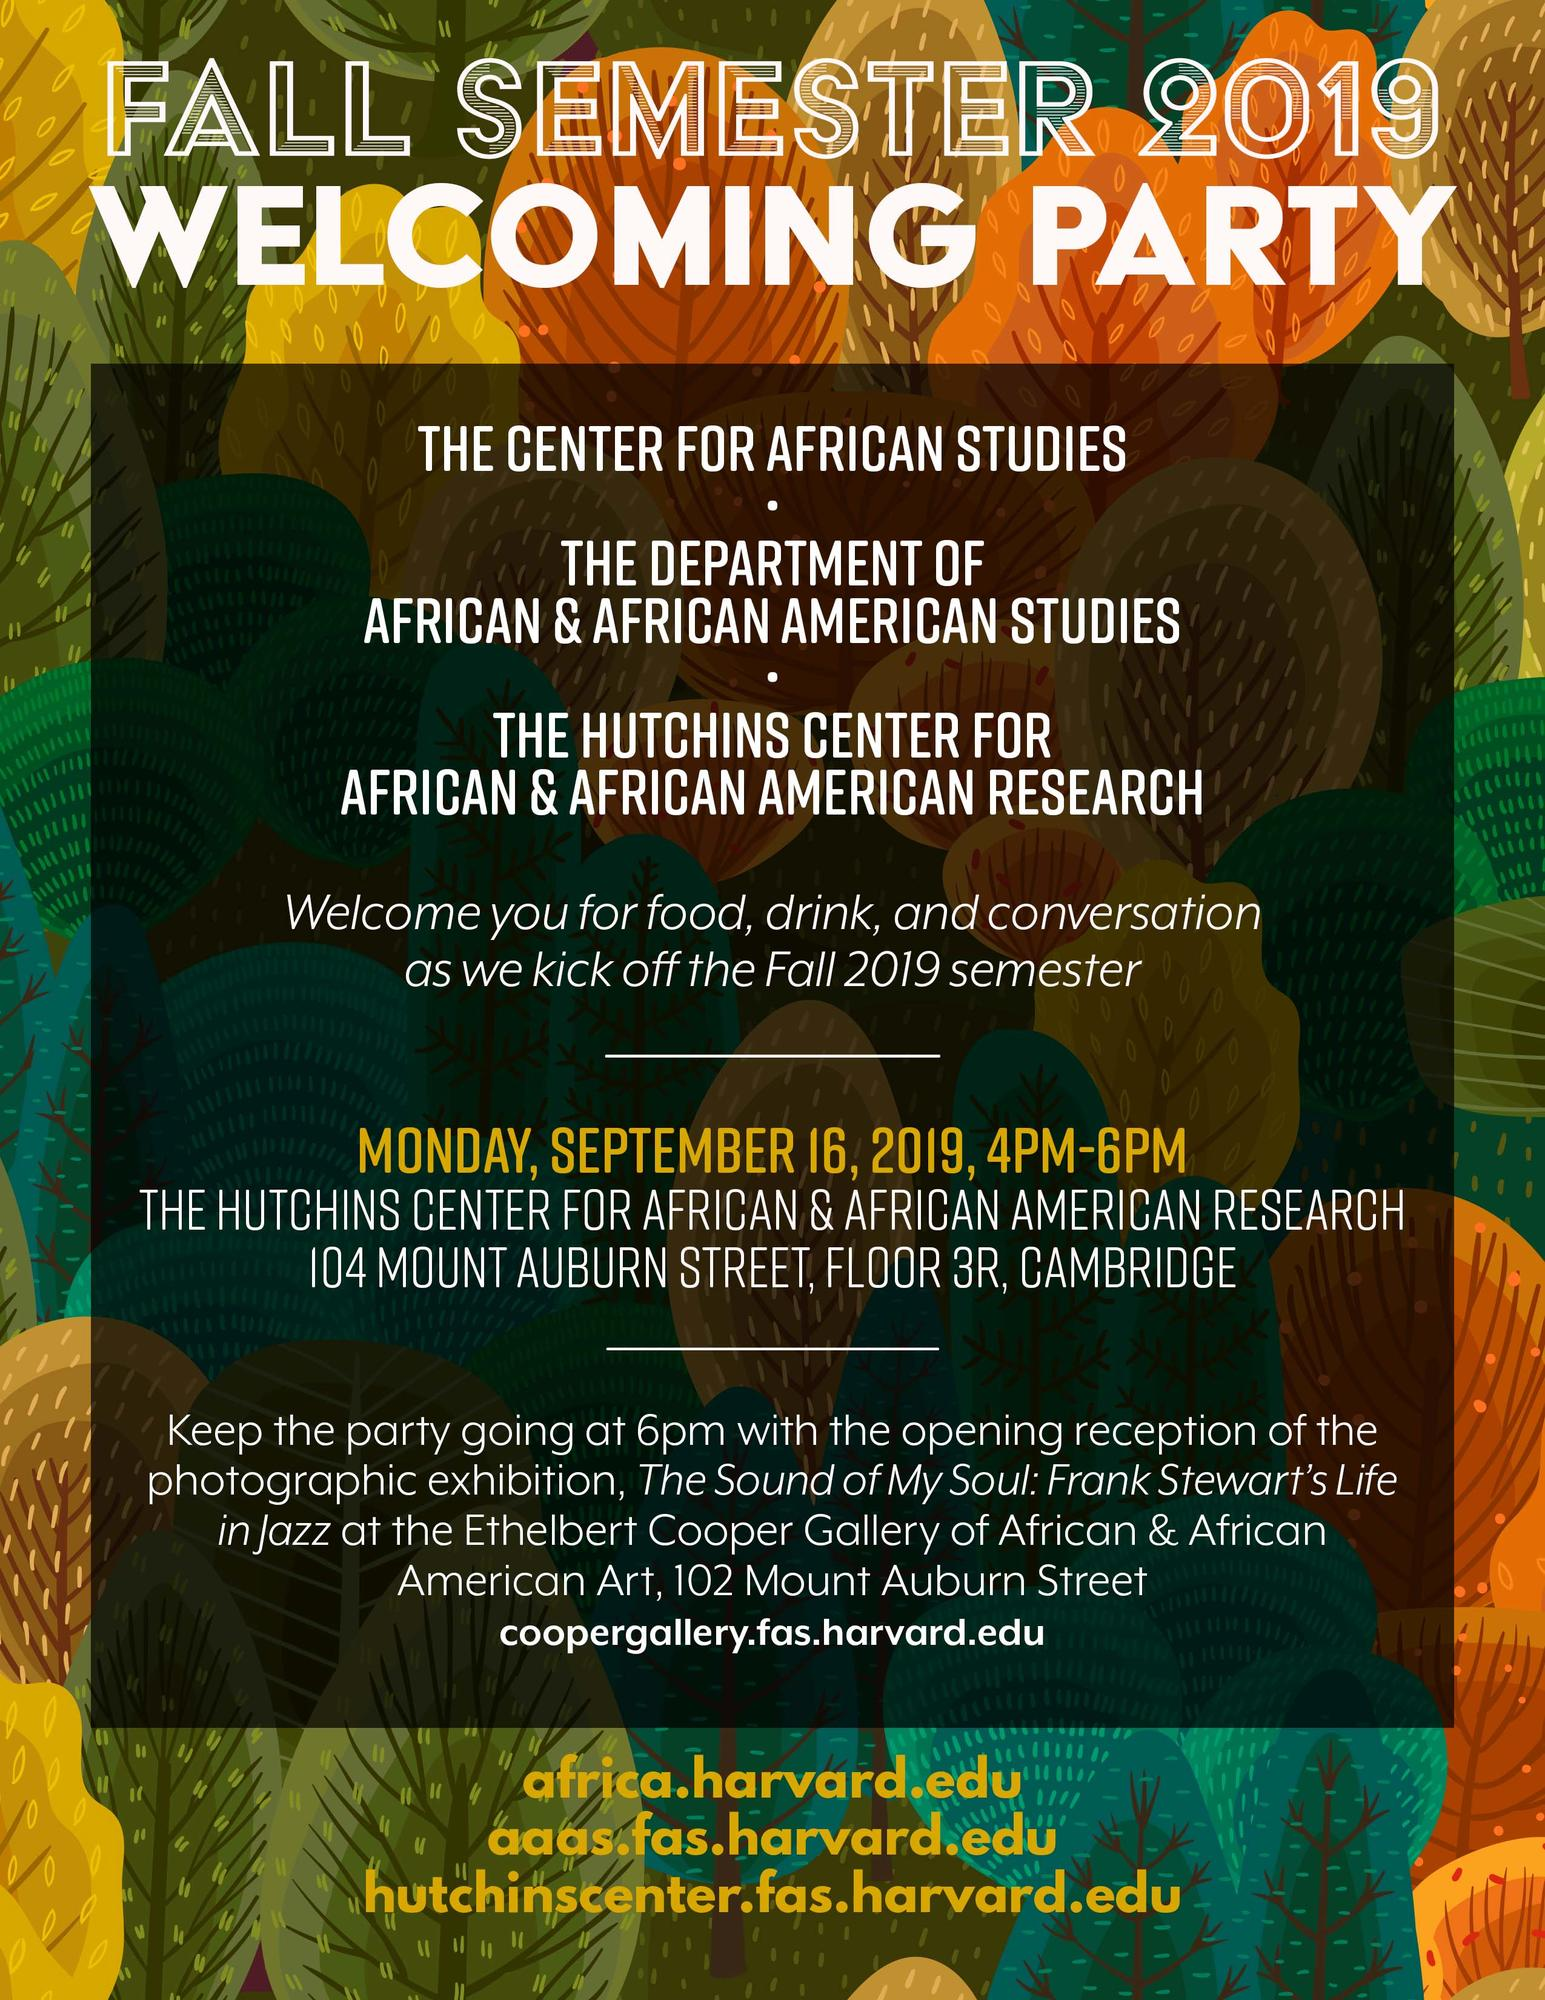 Welcome Party Poster